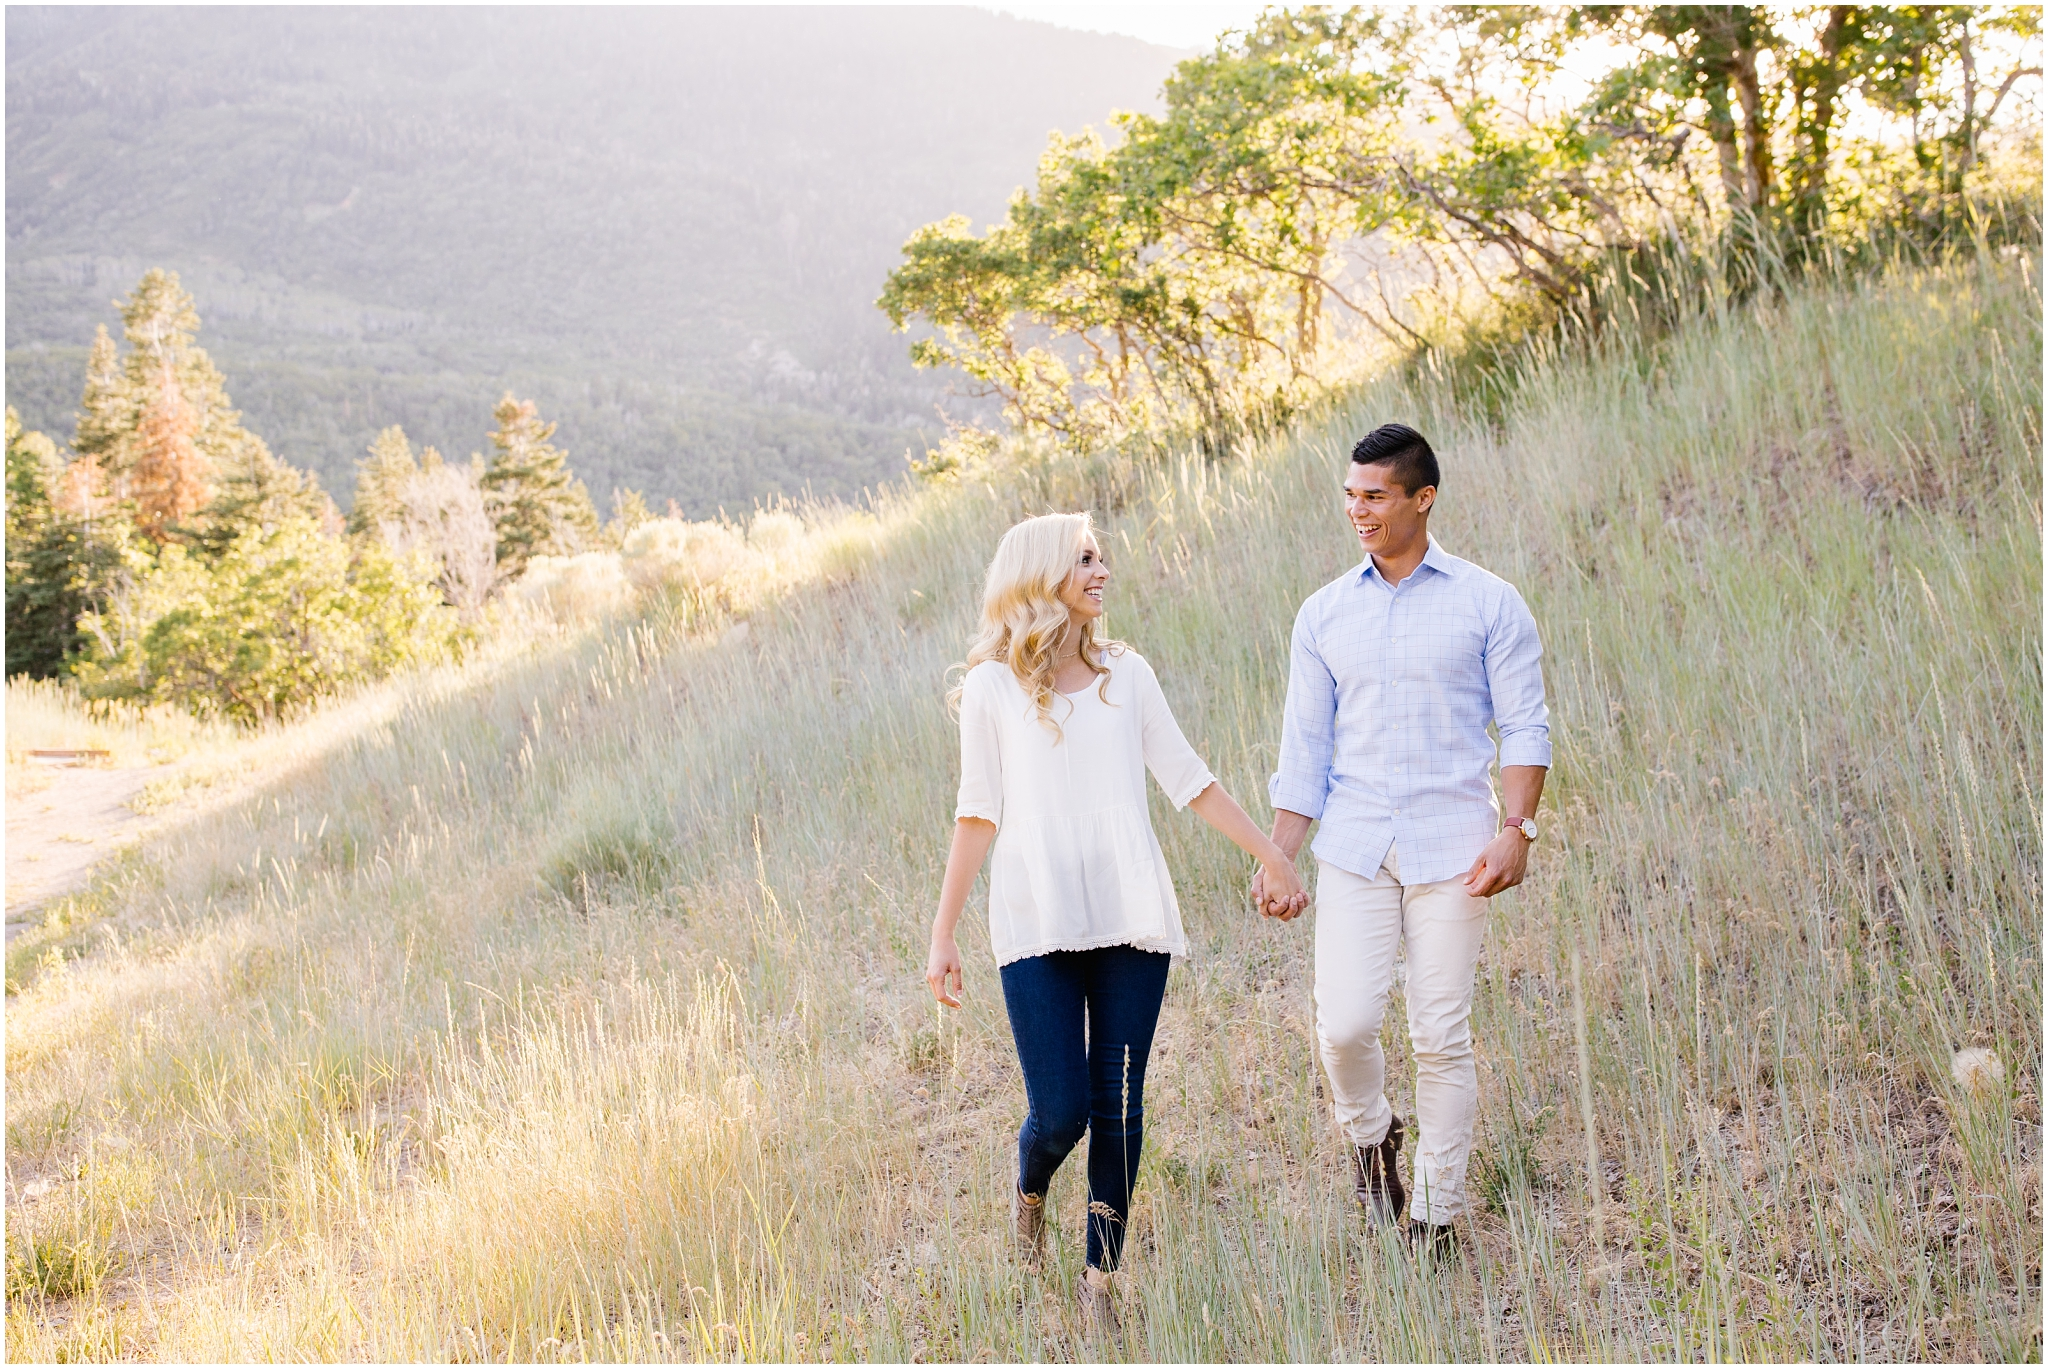 HCengagements-16_Lizzie-B-Imagery-Utah-Wedding-Photographer-Central-Utah-Park-City-Salt-Lake-City-Payson-Canyon-Engagement-Session.jpg